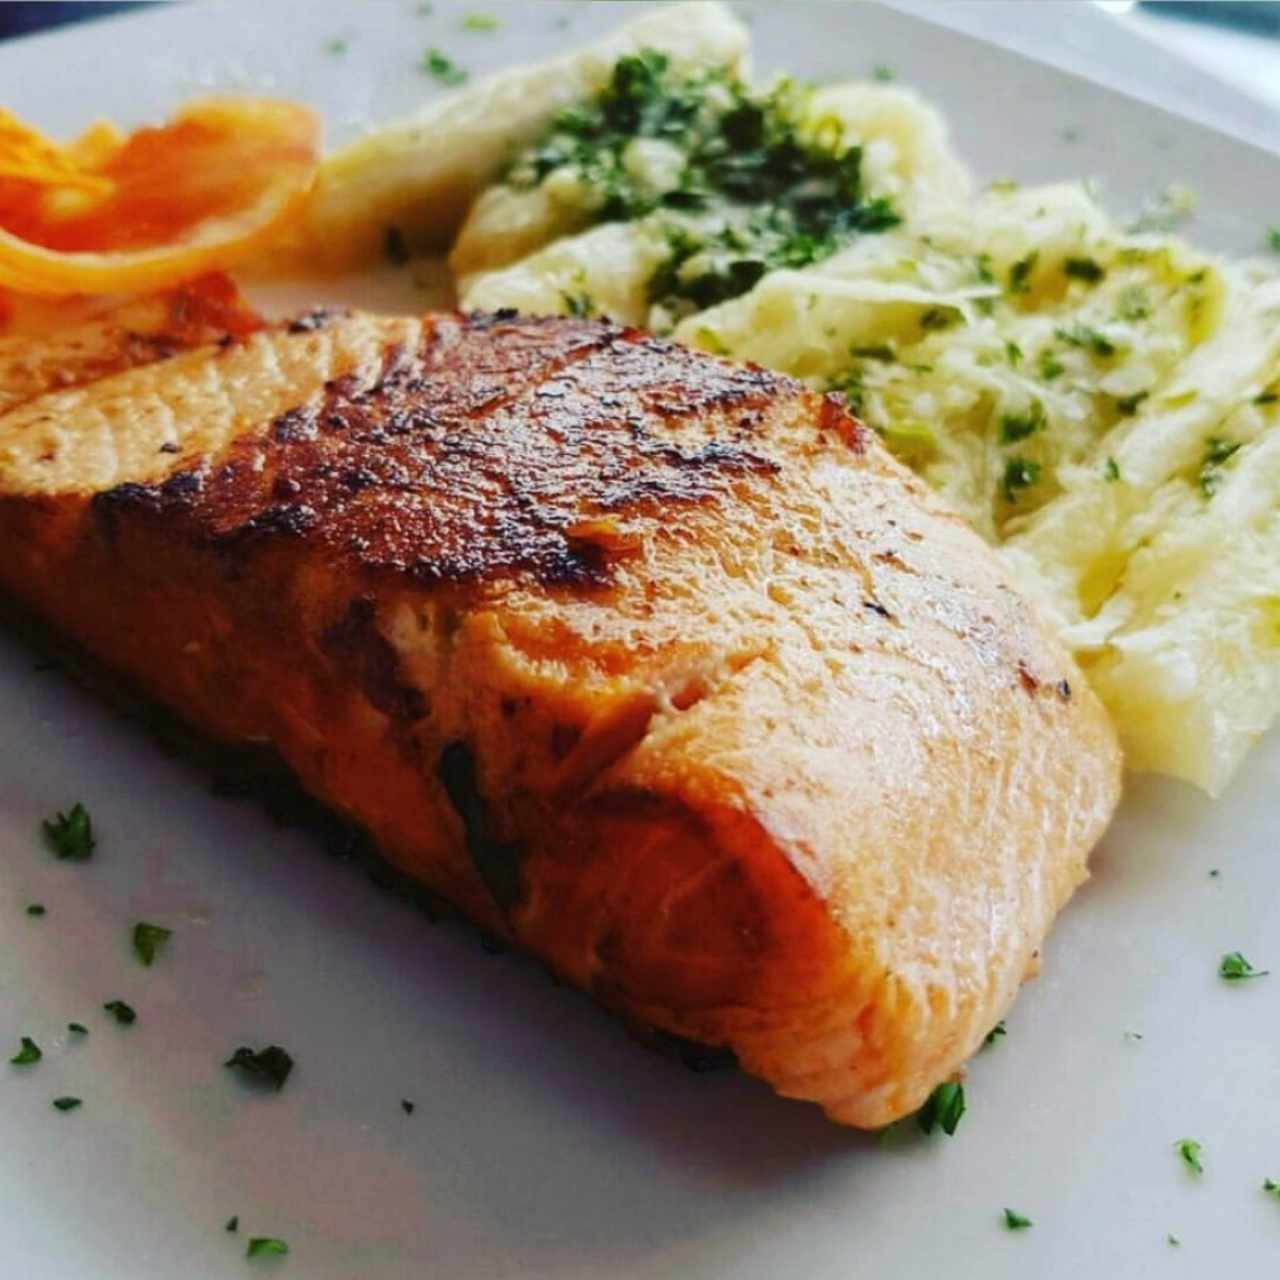 Filete de salmon con yuca al mojo